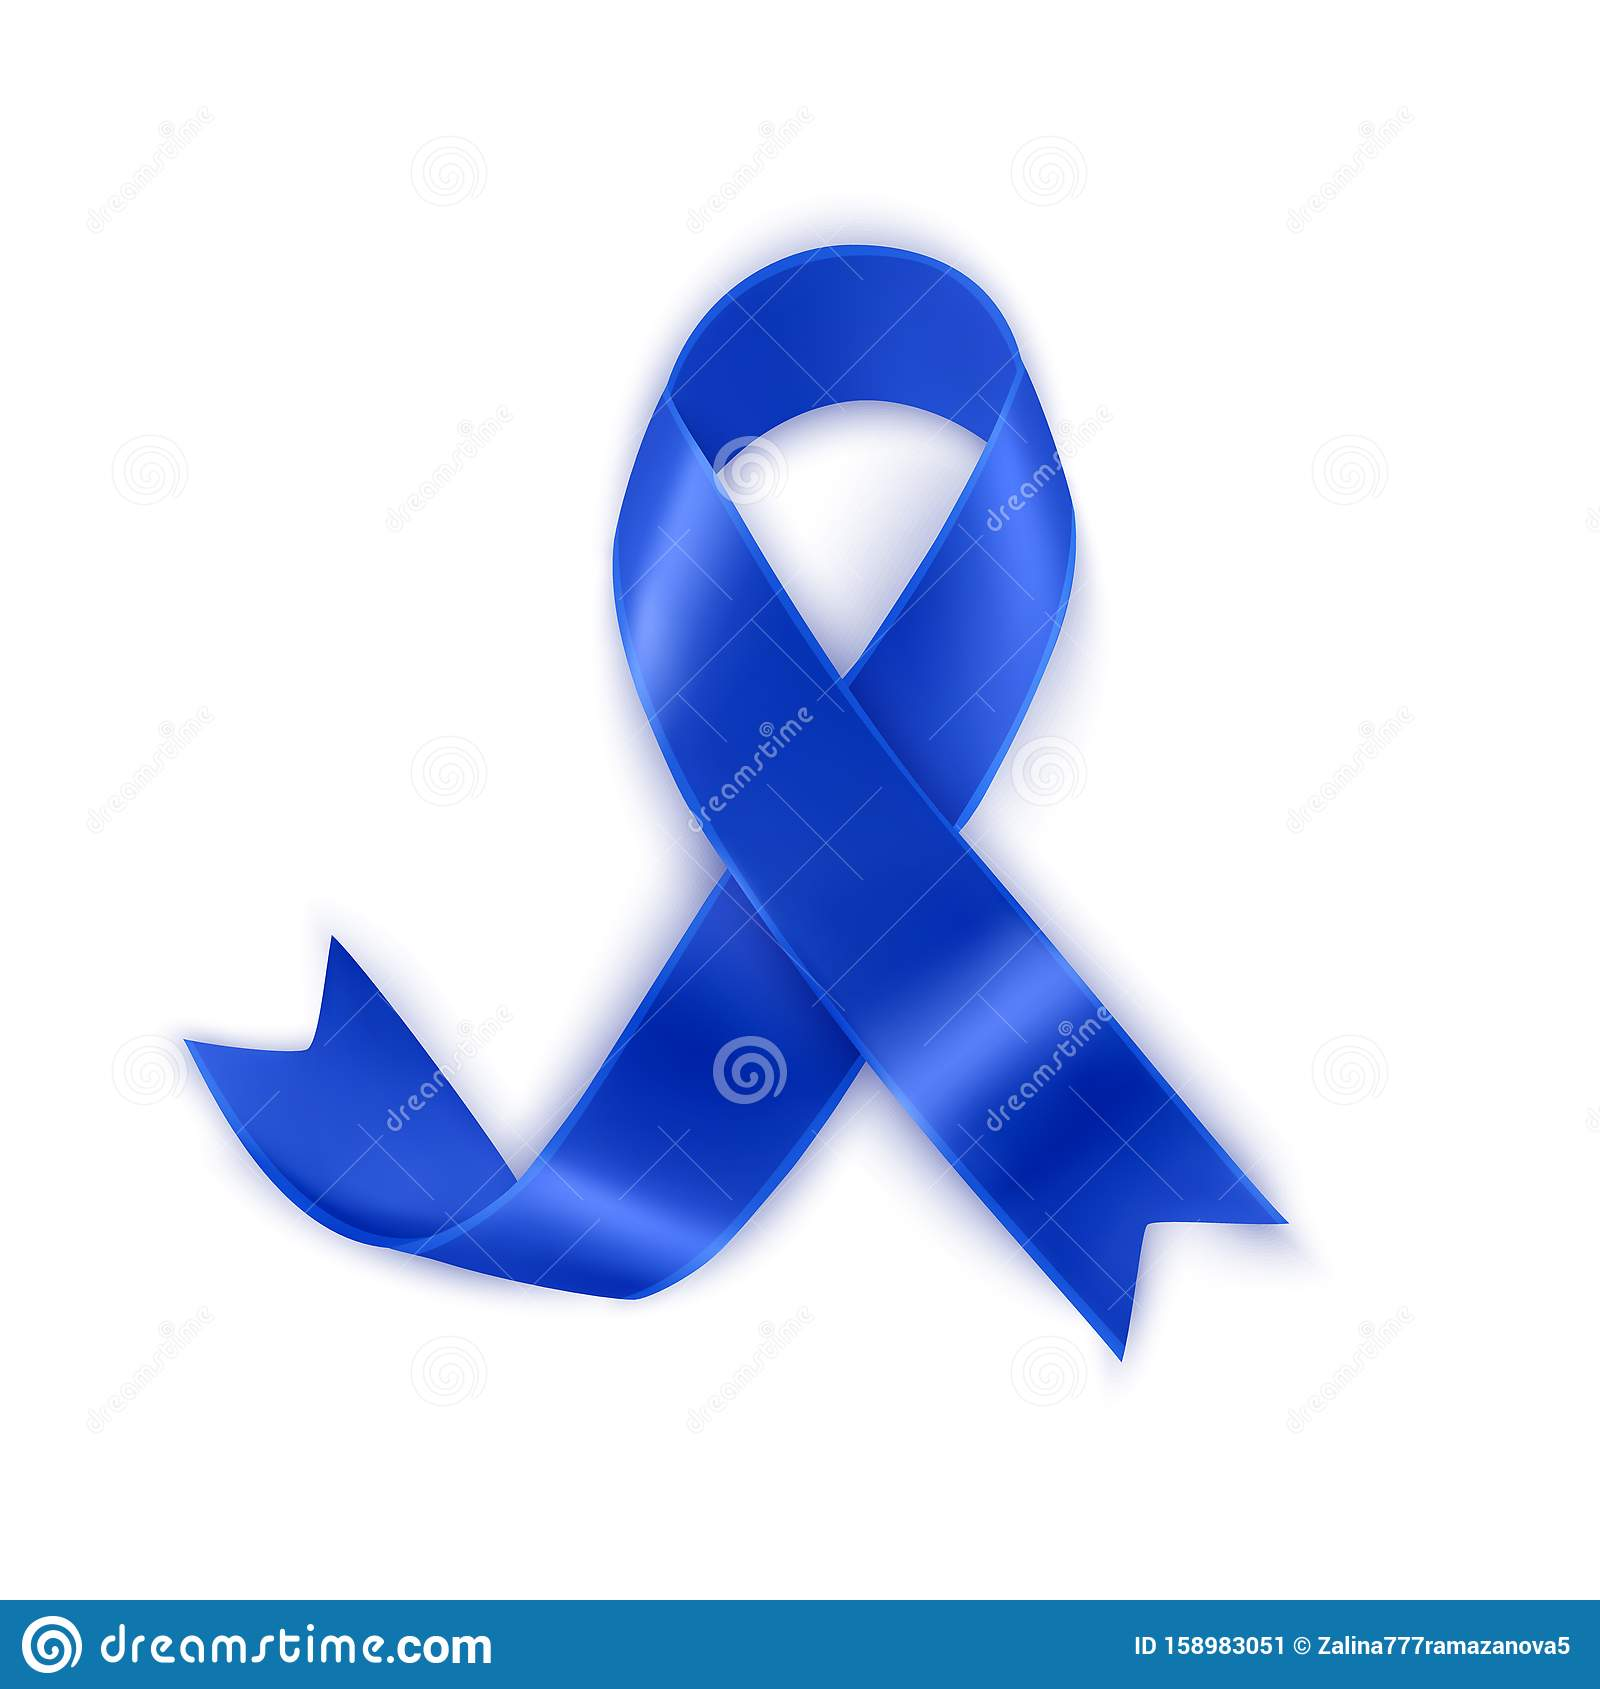 Awareness Dark Blue Ribbon Isolated On White Background Navy Blue Awareness Ribbon For Colon Cancer And Colorectal Cancer Symbol Stock Vector Illustration Of Awareness Dark 158983051